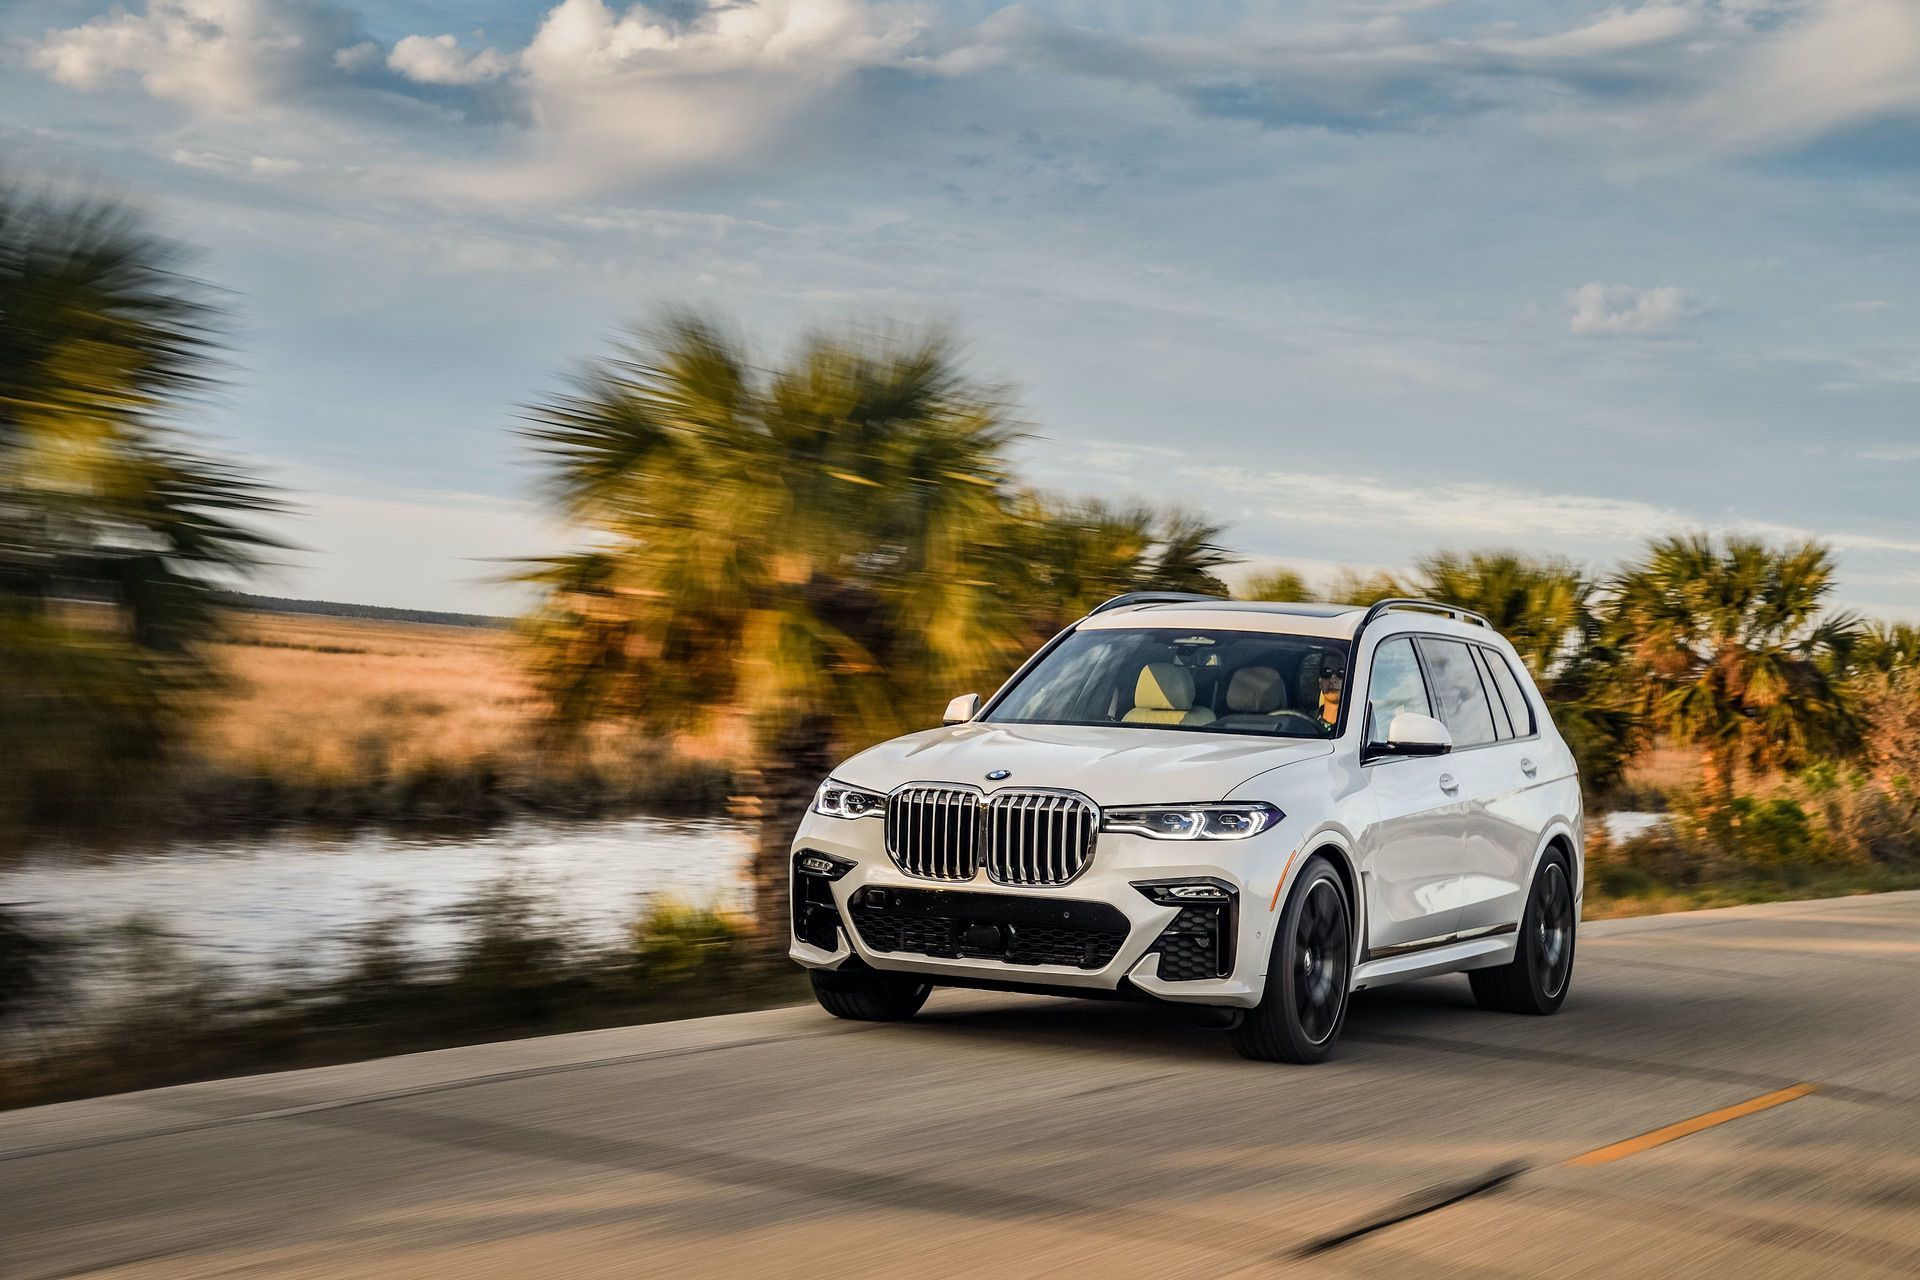 Gallery 2019 Bmw X7 Xdrive50i In Mineral White Metallic Bmw X7 Bmw New Bmw